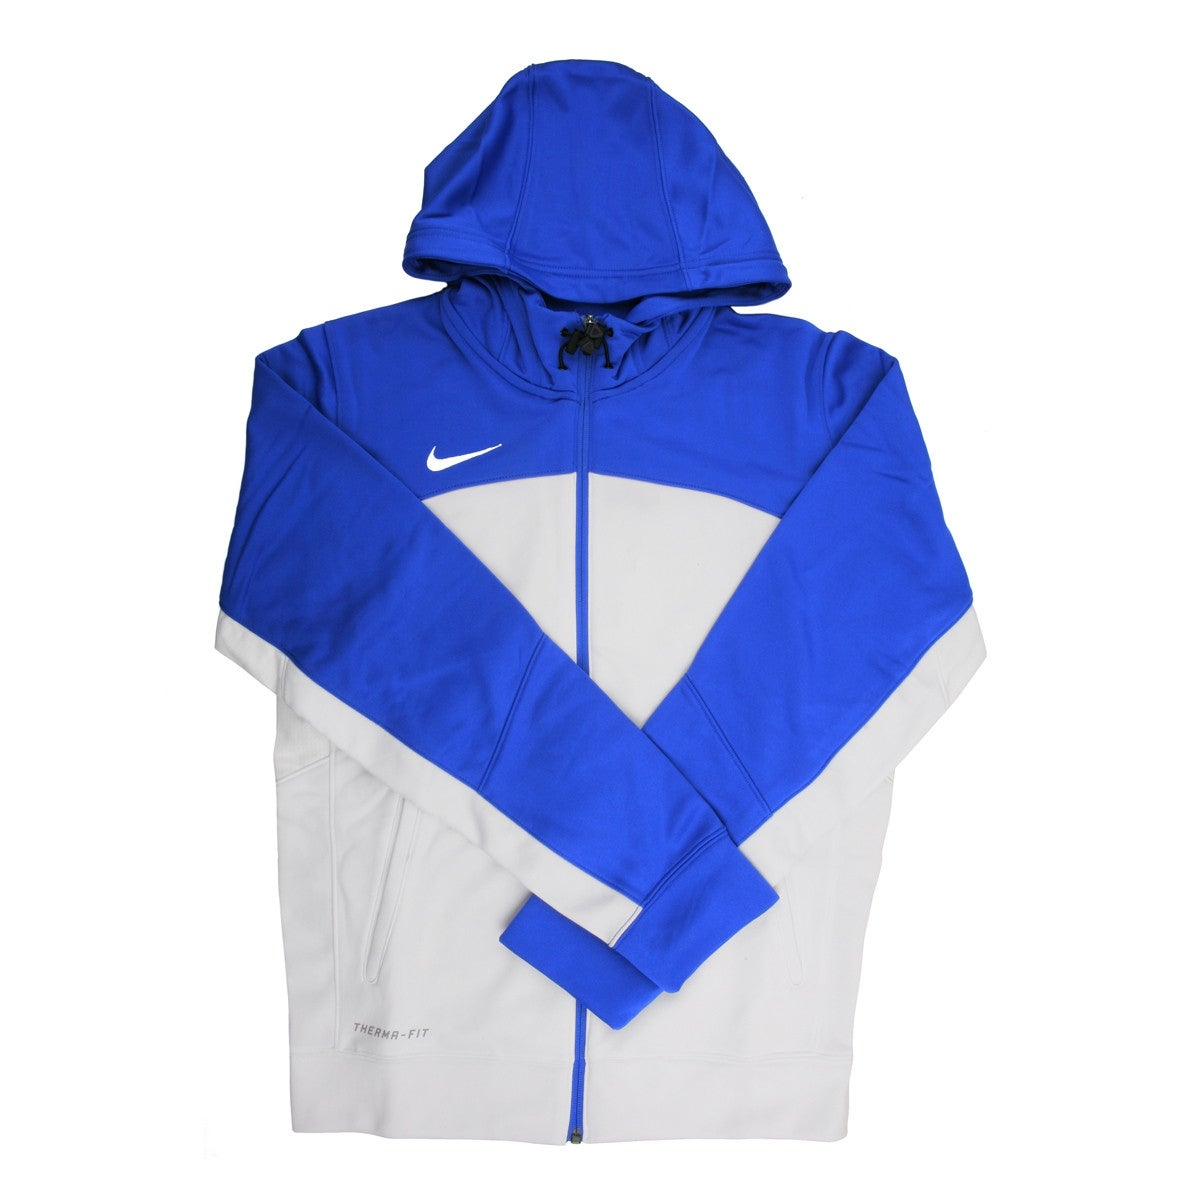 8b8e96145cee Shop Nike Therma-FIT Men s White Blue Full Zip Training Hoodie - Small -  Free Shipping Today - Overstock - 21293960